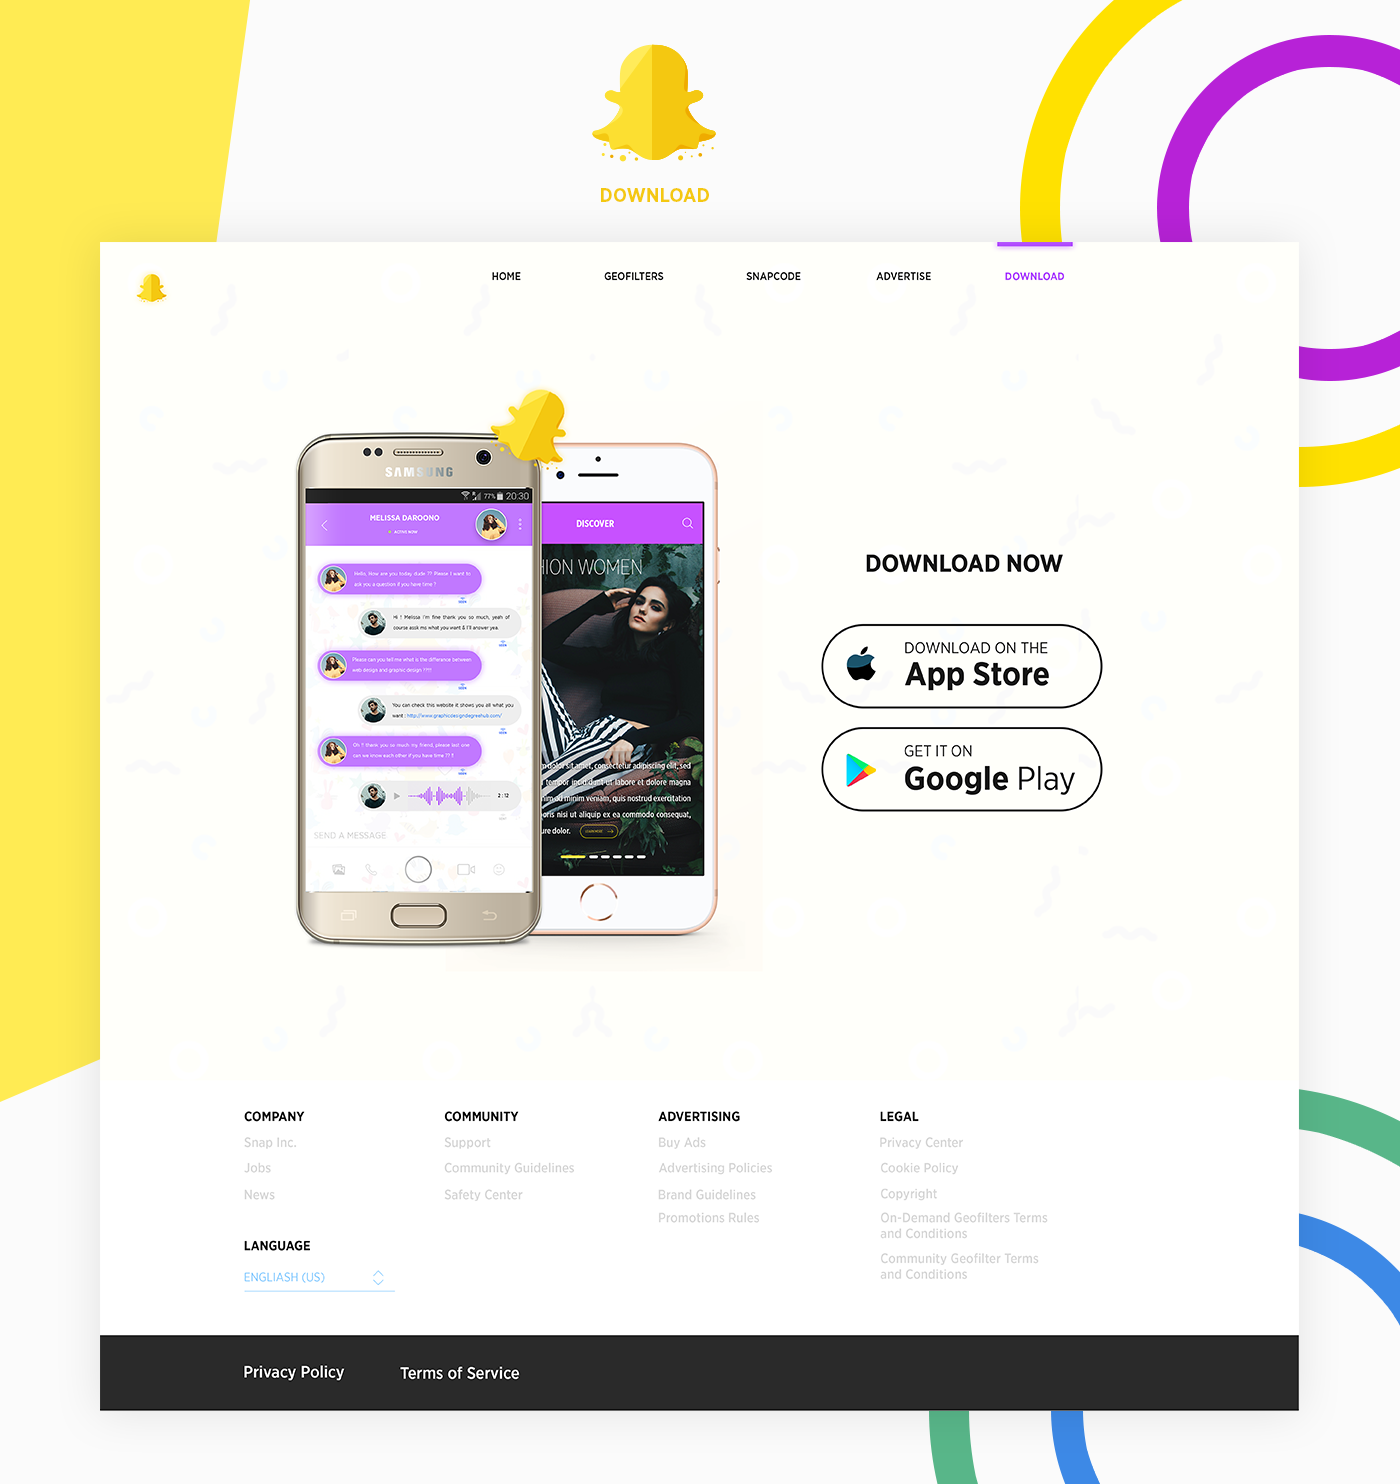 Snapchat Redesign on Behance